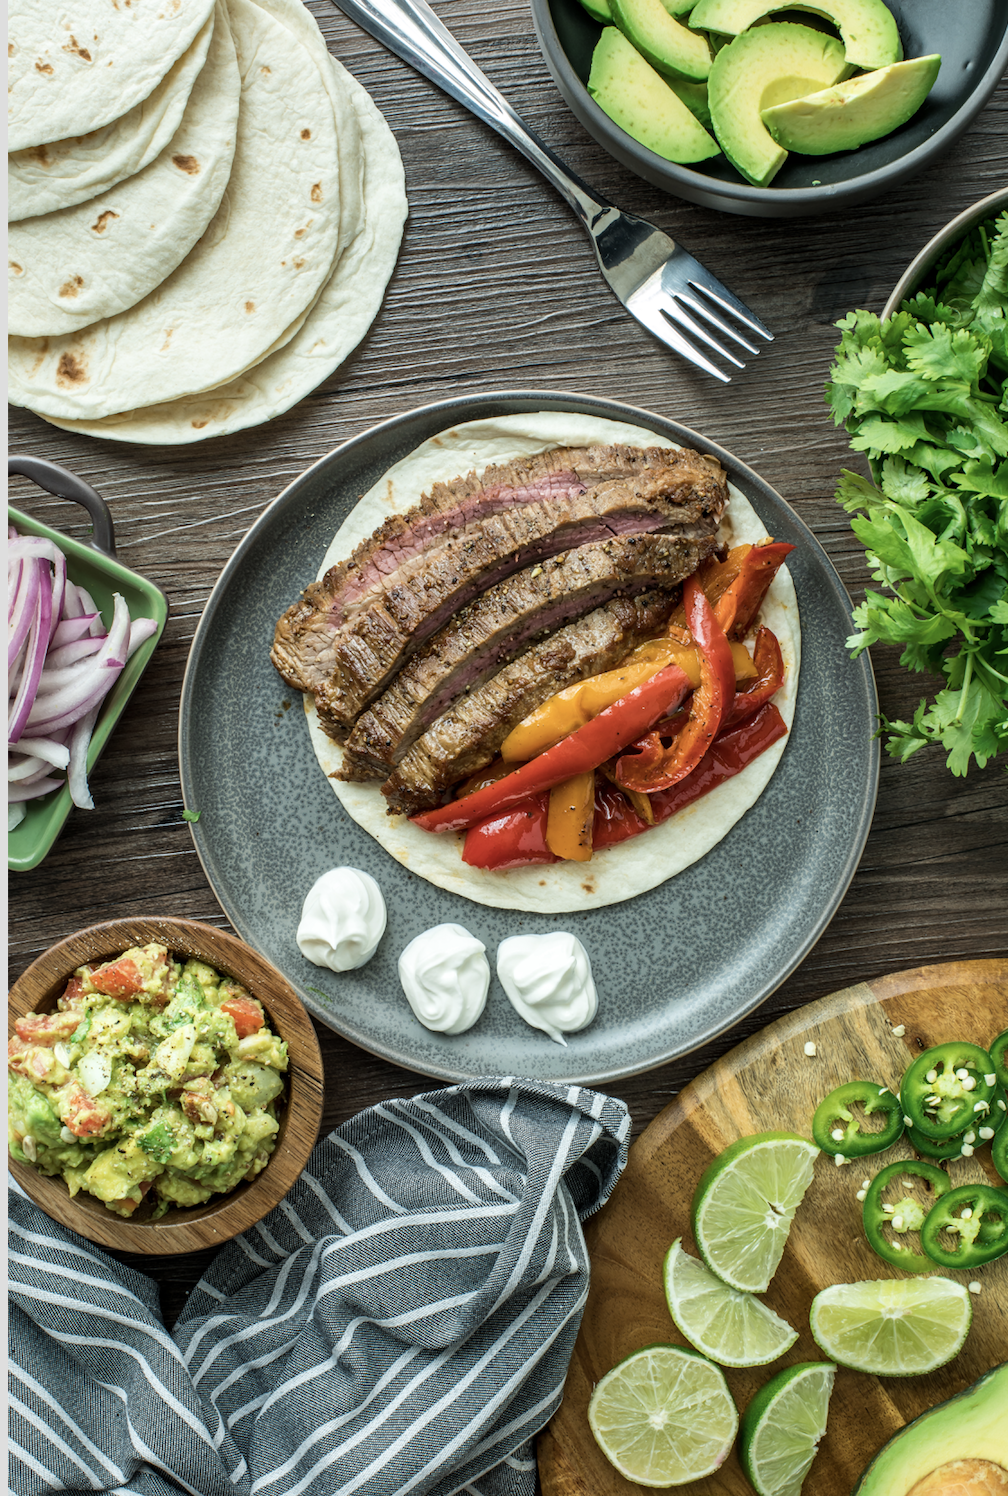 Tequila Lime Steak Fajitas